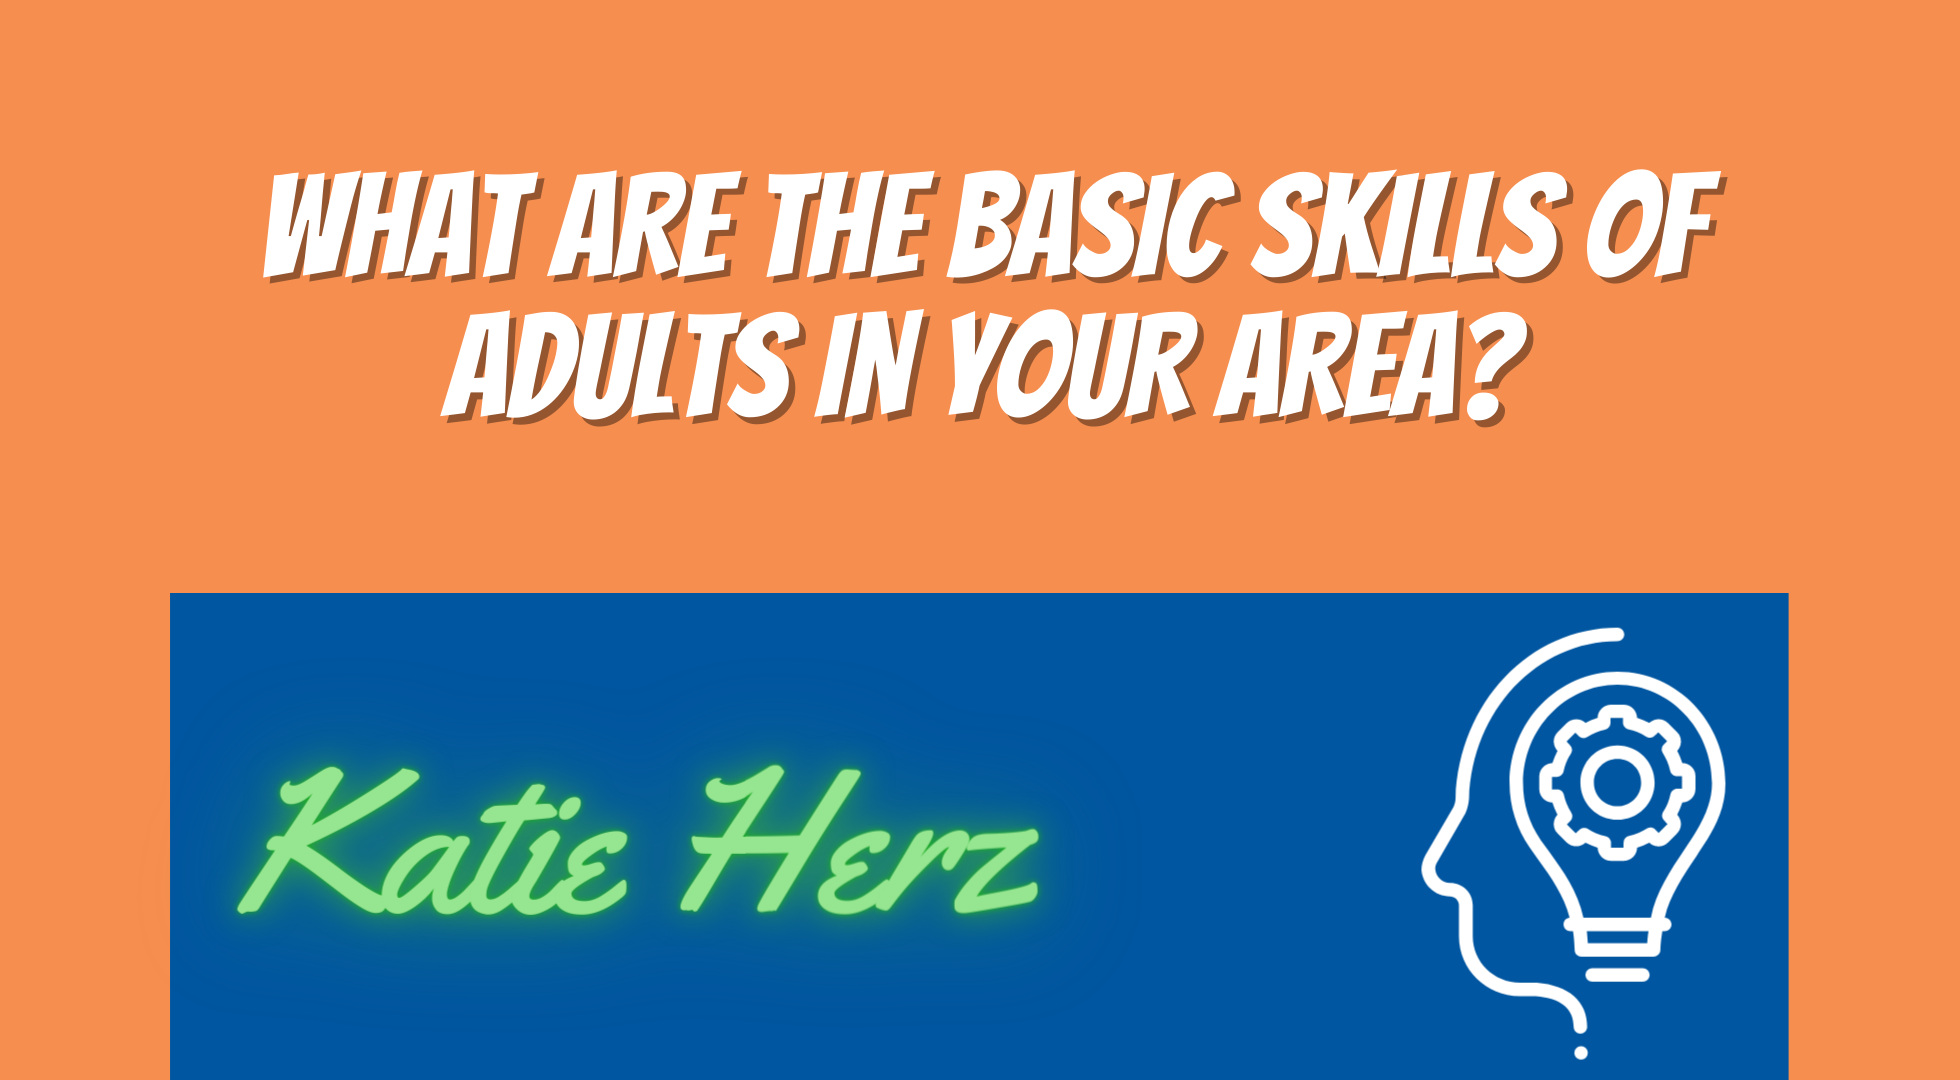 What Are the Basic Skills of Adults in Your Area?